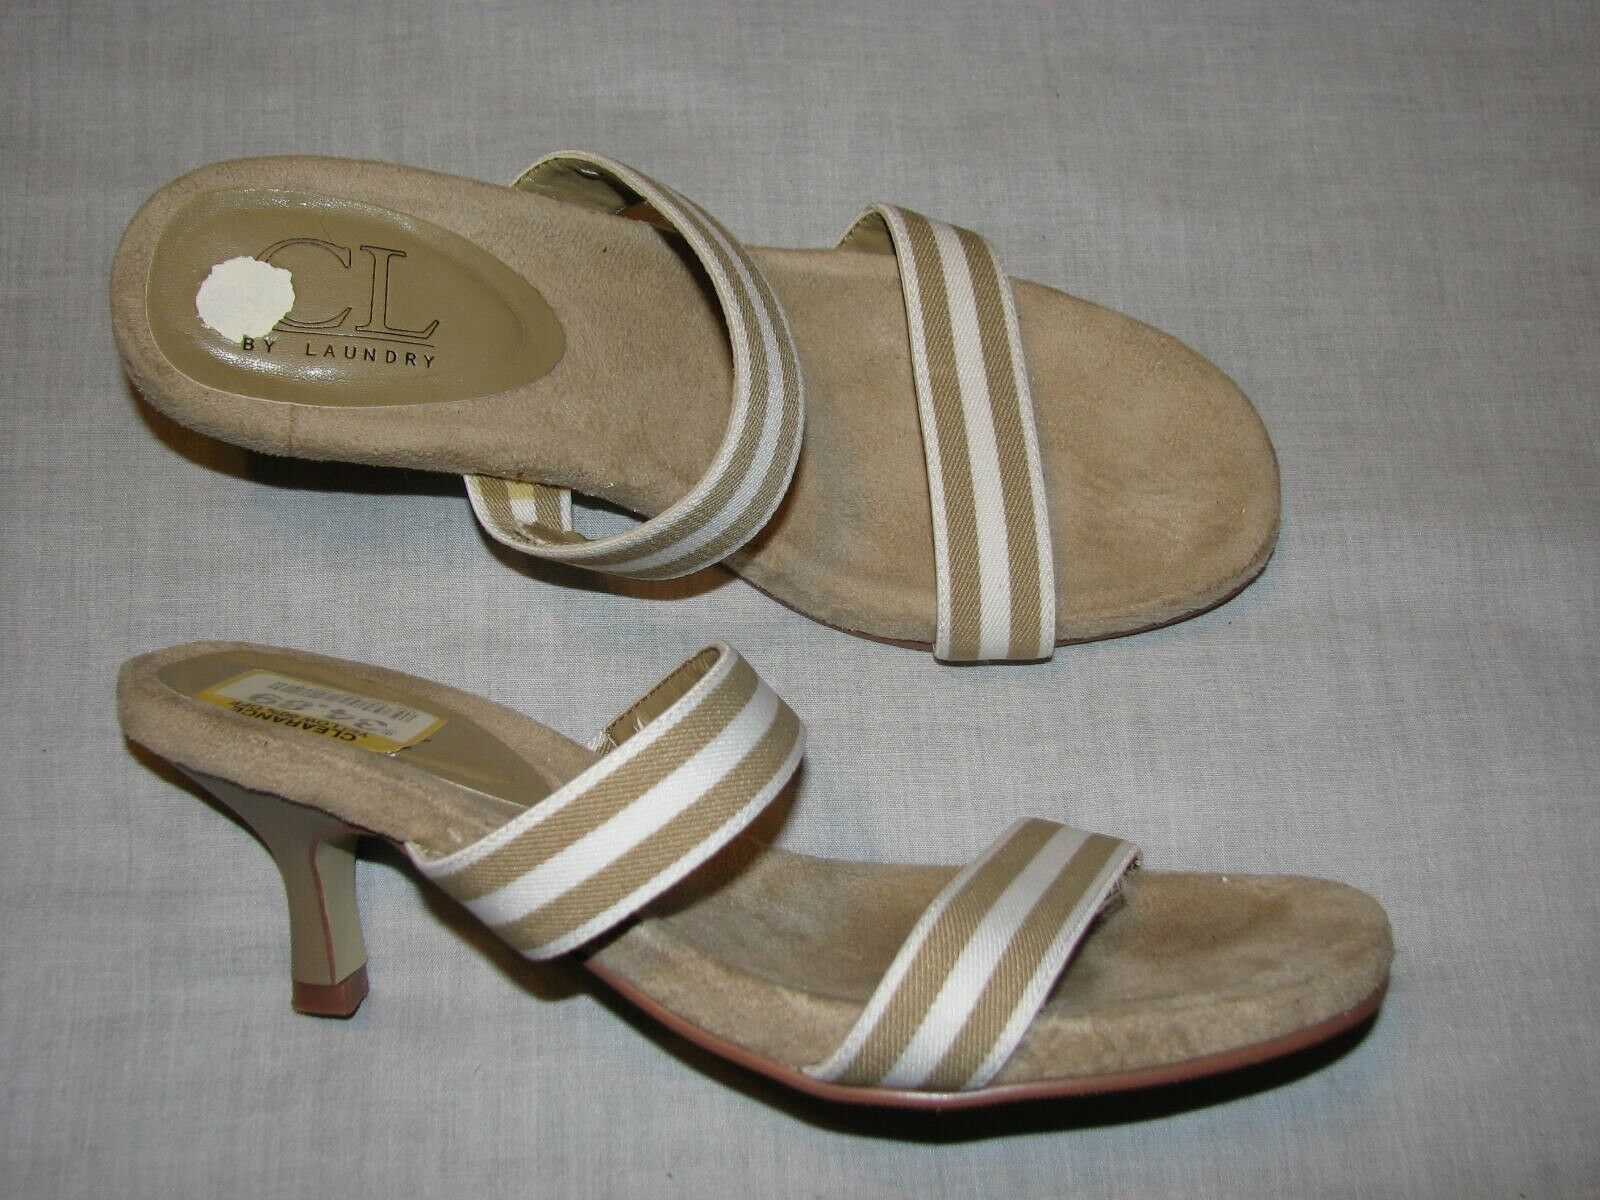 7.5 M CL Chinese Laundry Kitten Brown Tah Striped White Kitten Laundry High Heels Ladies Shoes f25fea